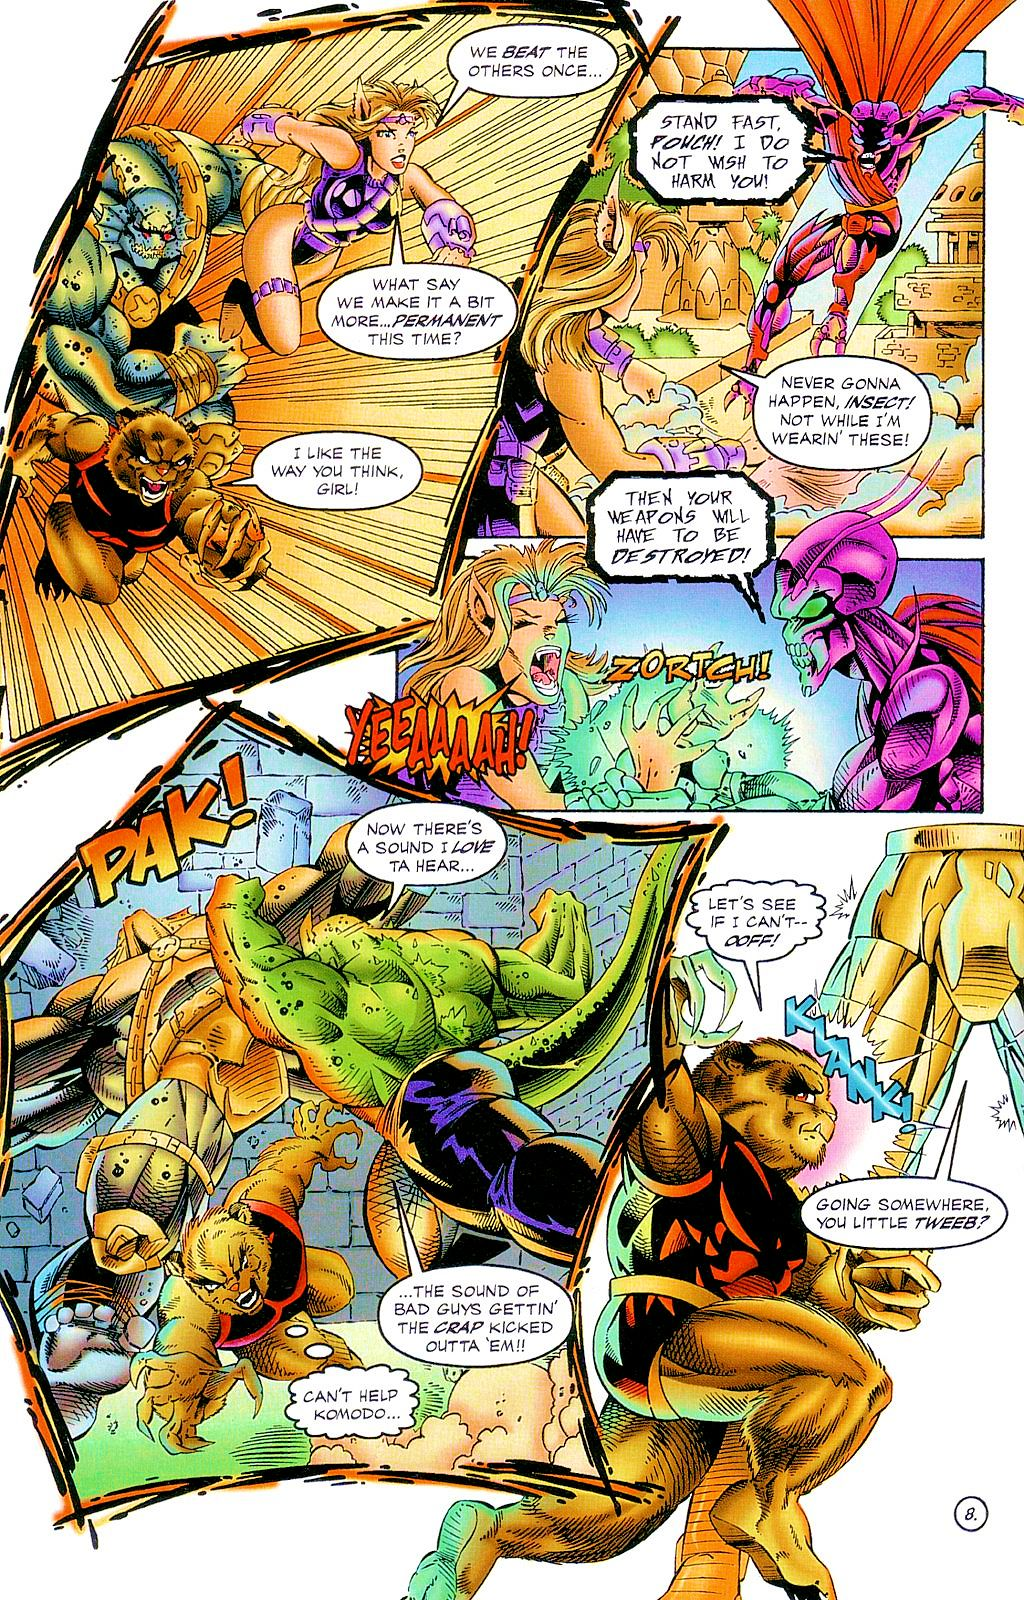 Read online The Others comic -  Issue #2 - 9